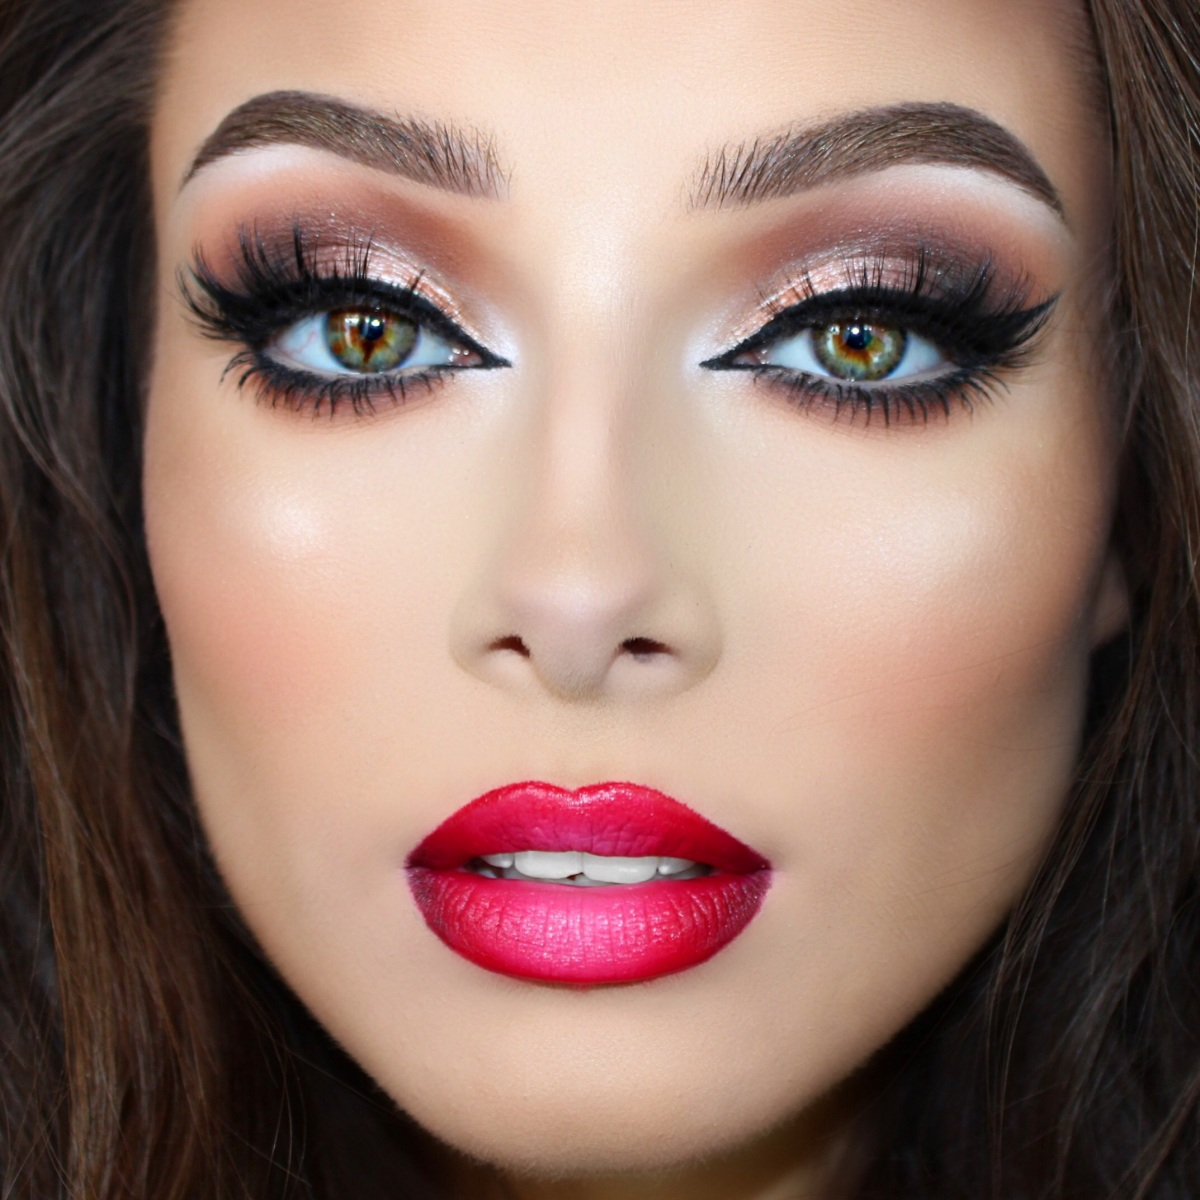 Beautiful Woman Arabic Makeup Red Lips Stock Photo ... |Beautiful Makeup Lips